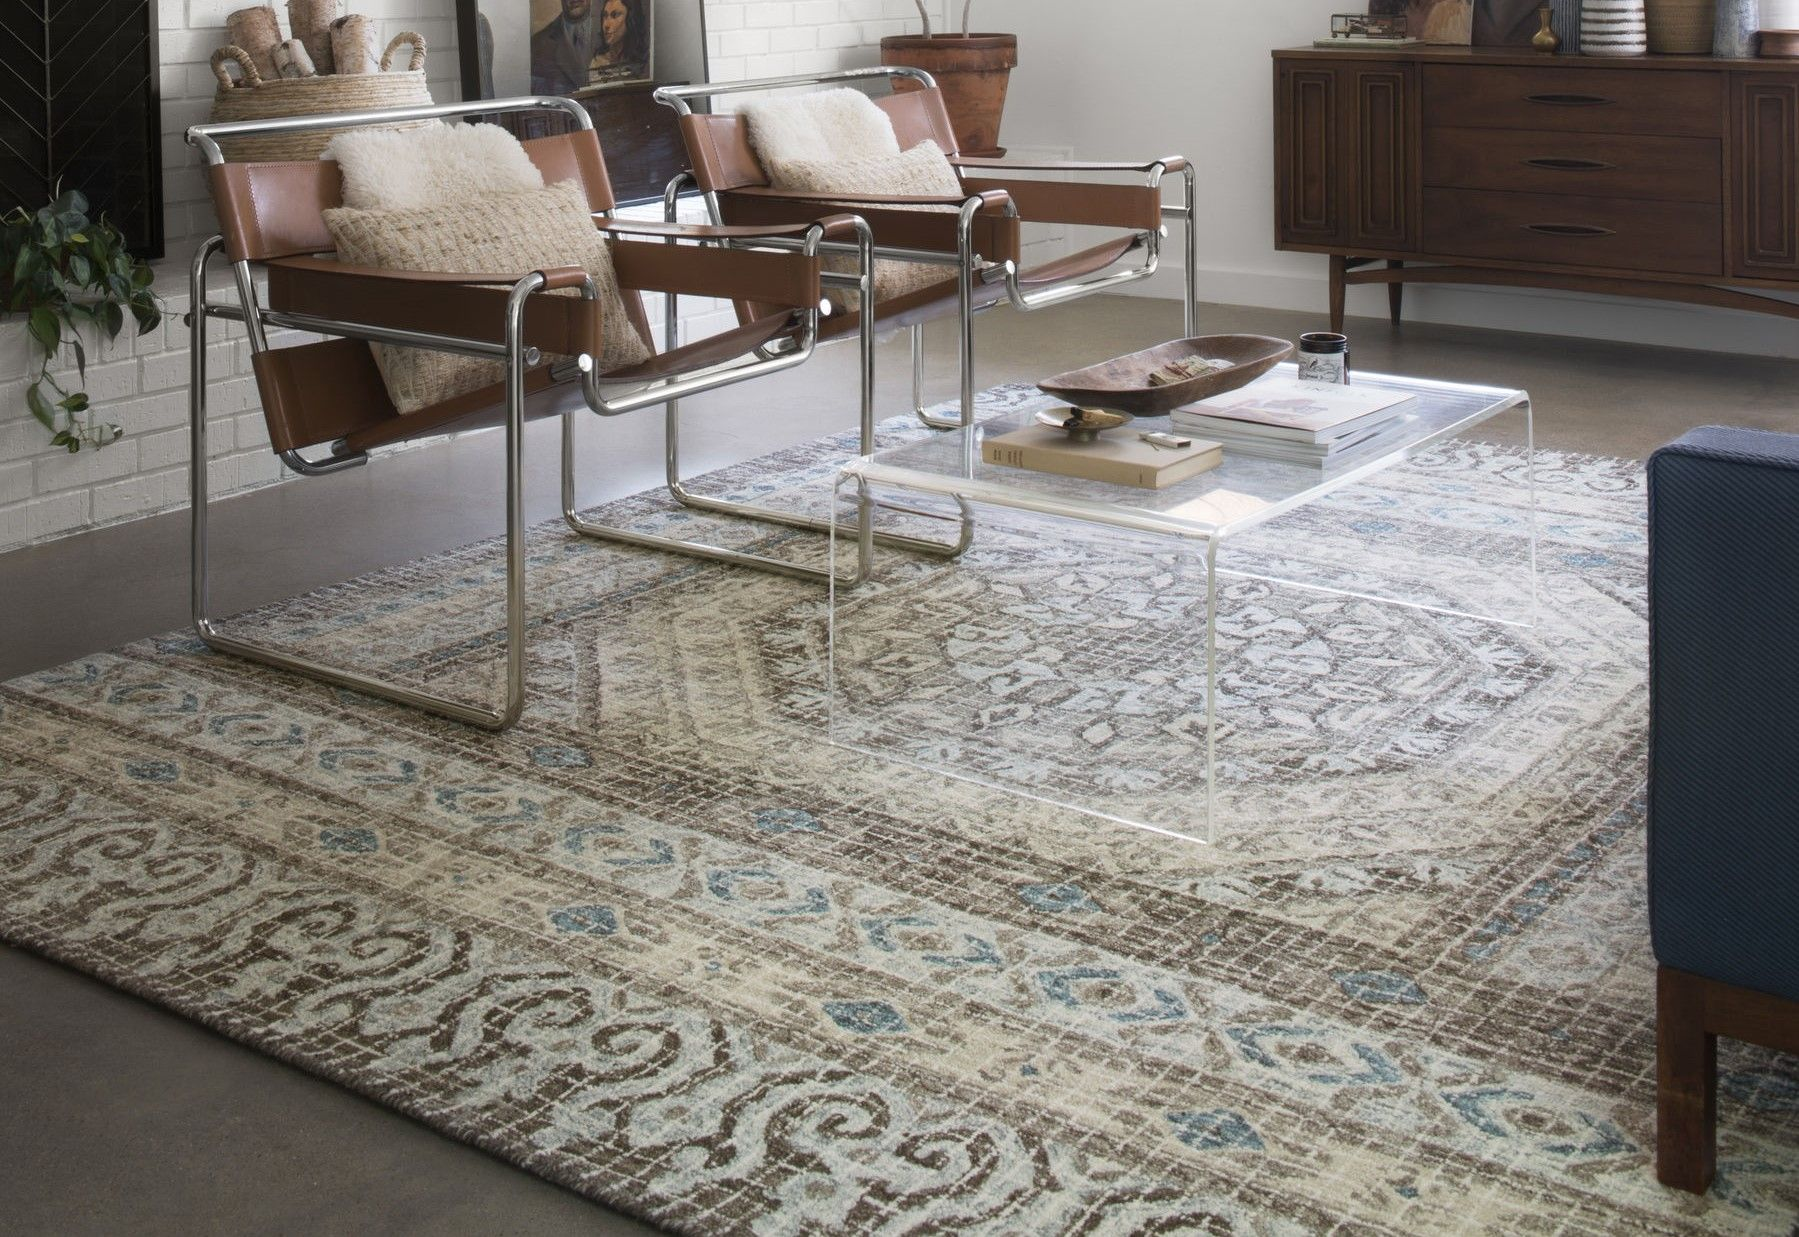 How To Flatten A Rug That Has Been Folded Feels Free To Follow Us In 2020 Rugs Area Rugs Large Area Rugs